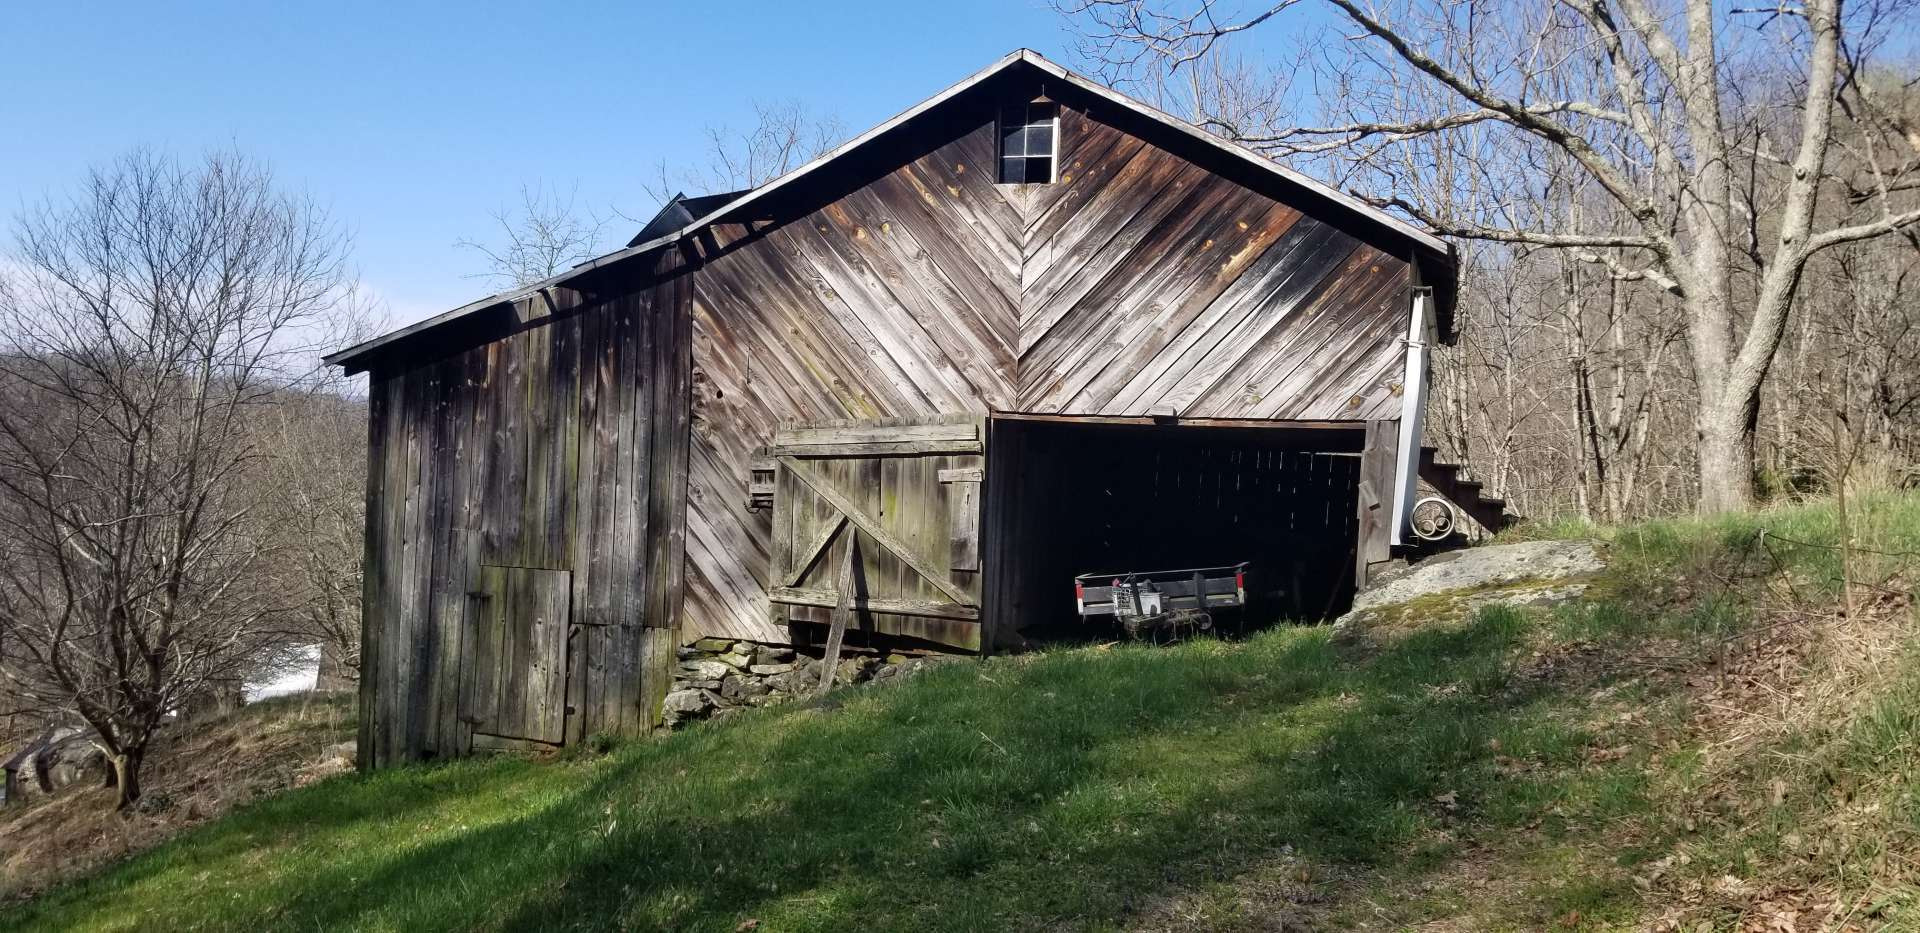 Another Large Barn On Property